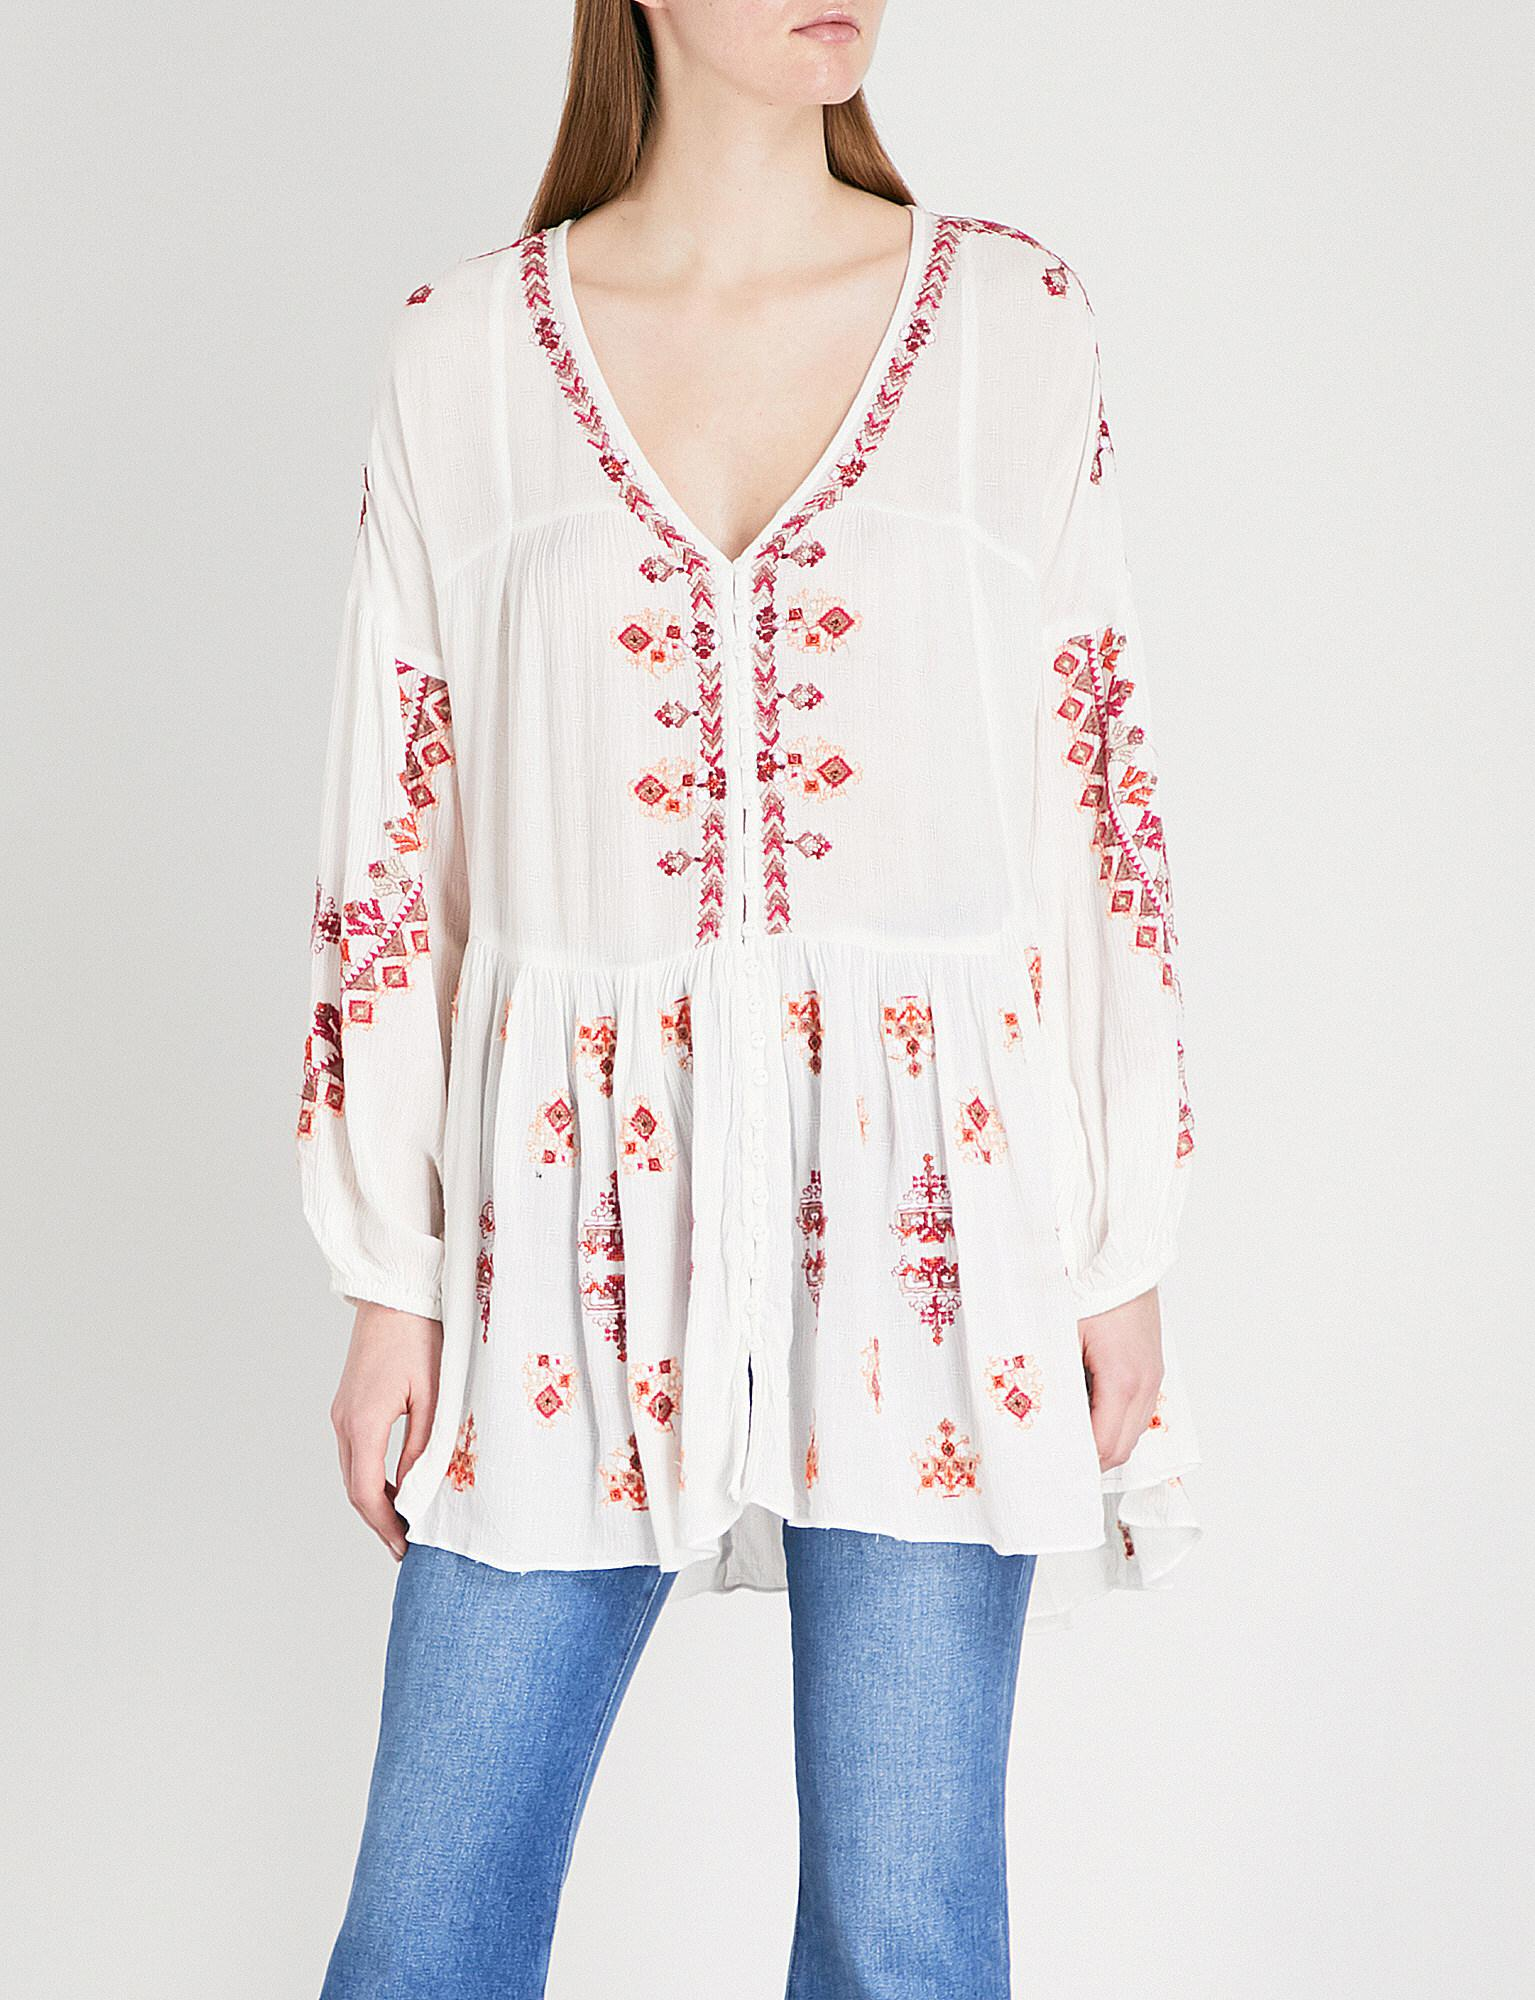 5f304cc6eed Lyst - Free People Arianna Embroidered Woven Top in White